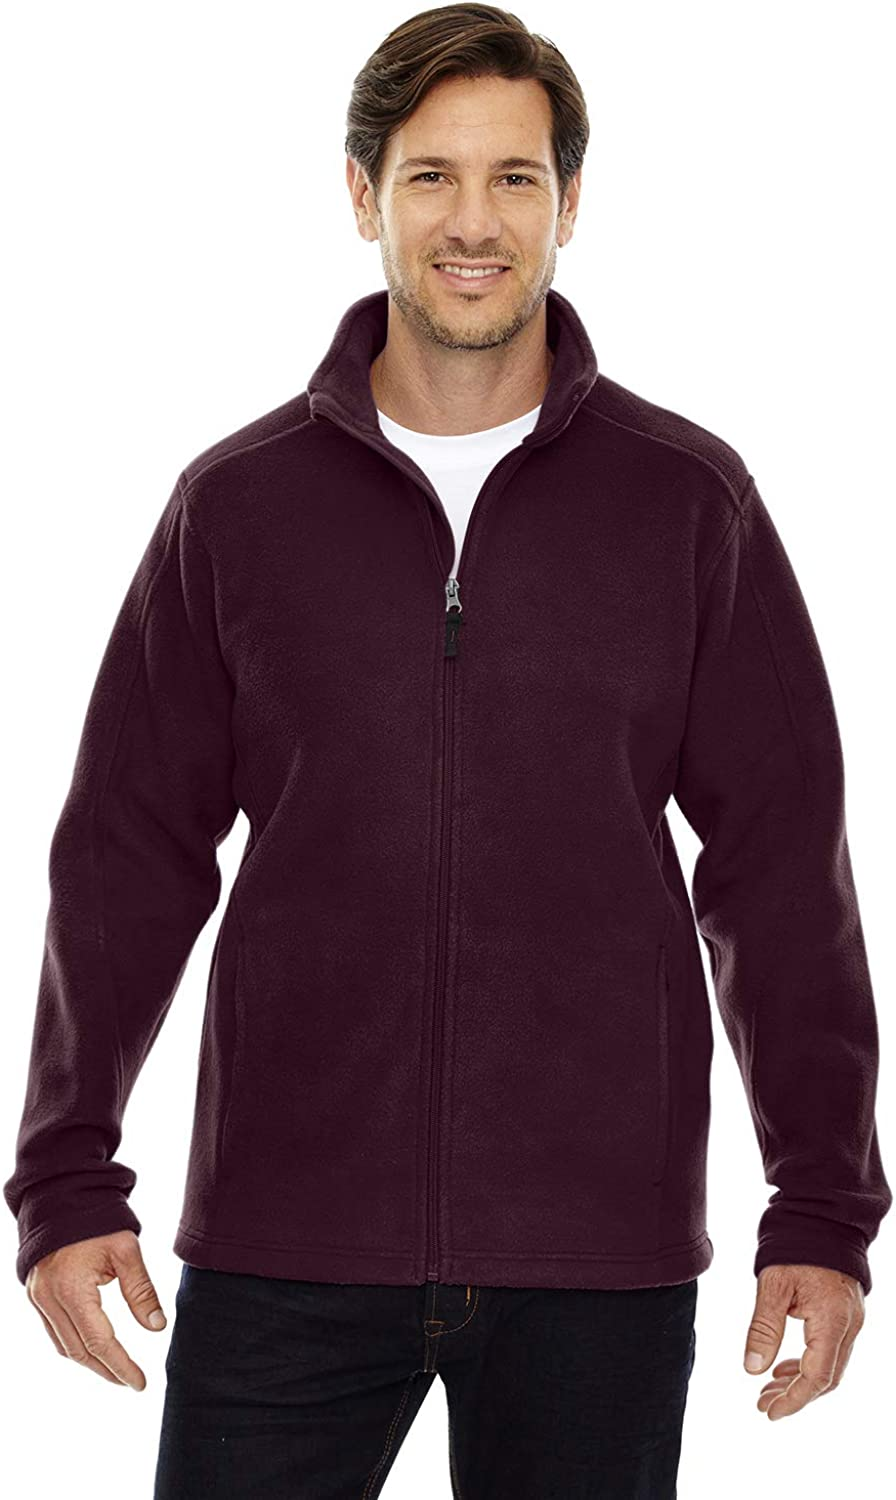 Ash City Core 365 Core 365 Journey/ Mens Anti-Pill Fleece Jacket